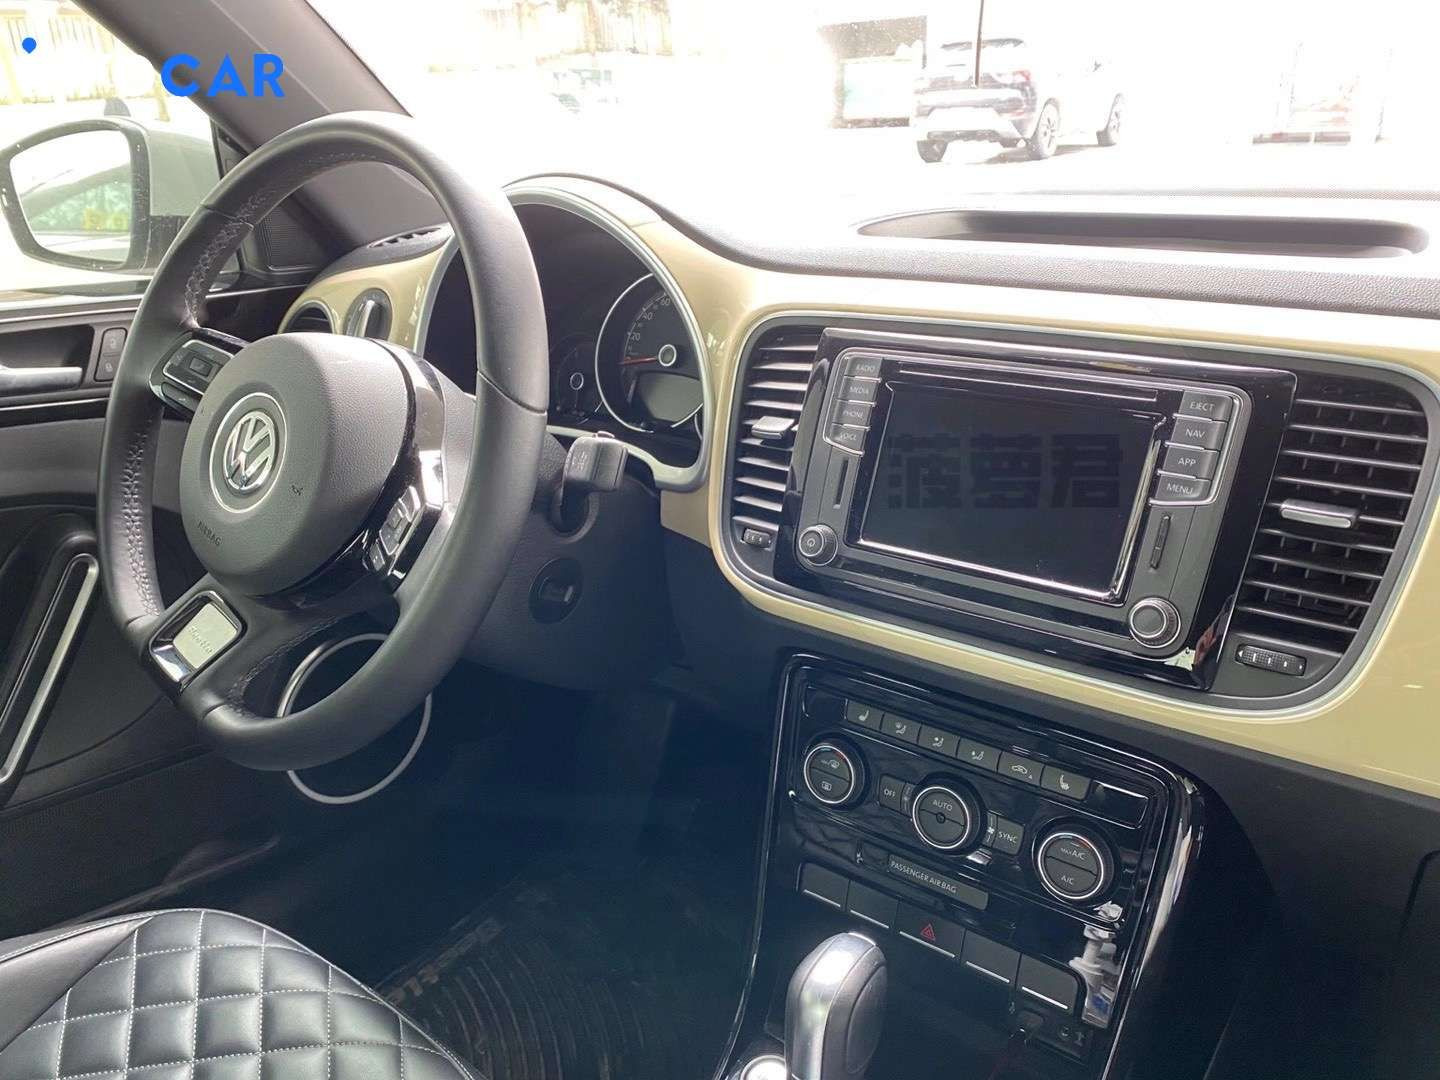 2019 Volkswagen Beetle null - INFOCAR - Toronto's Most Comprehensive New and Used Auto Trading Platform